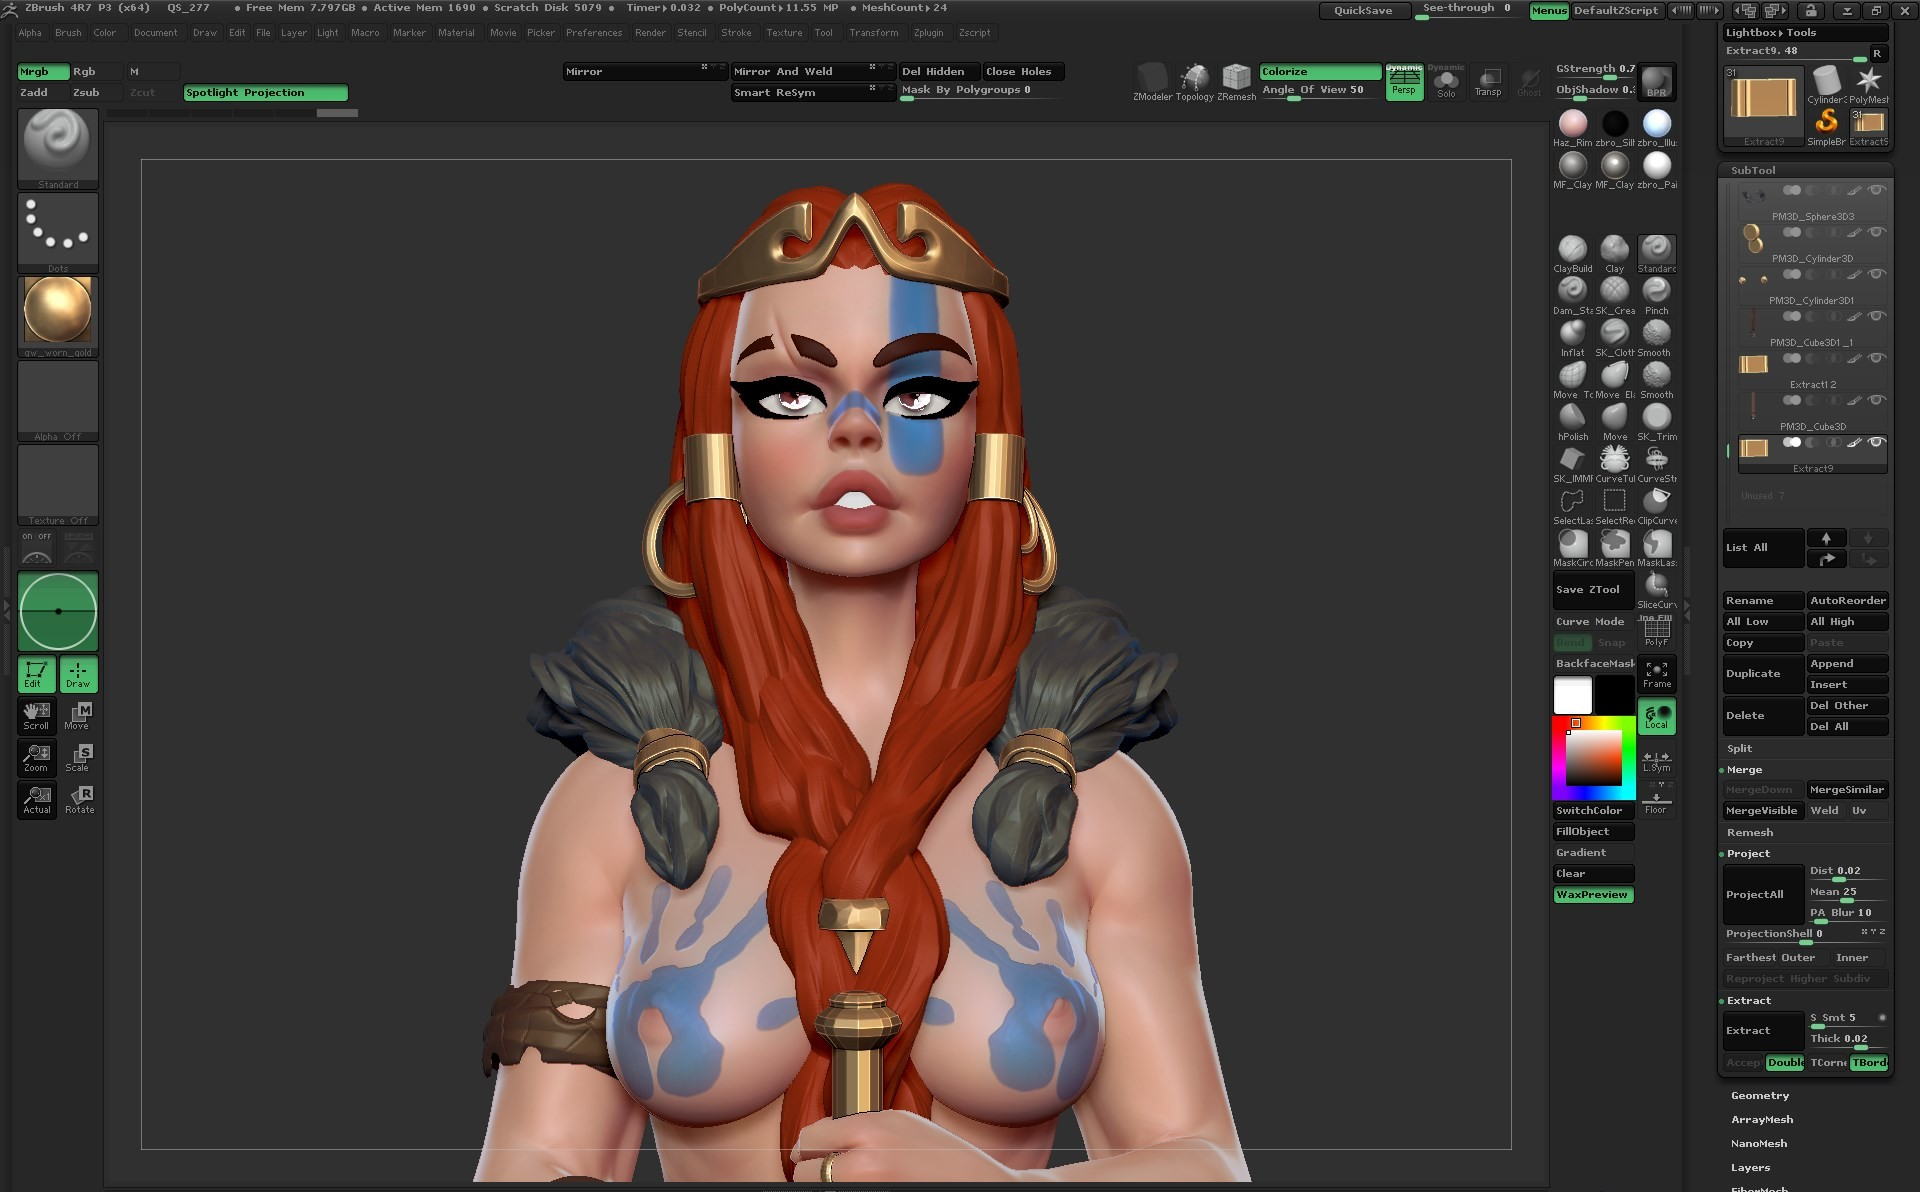 Mercurial forge zbrush64 2016 04 04 23 23 48